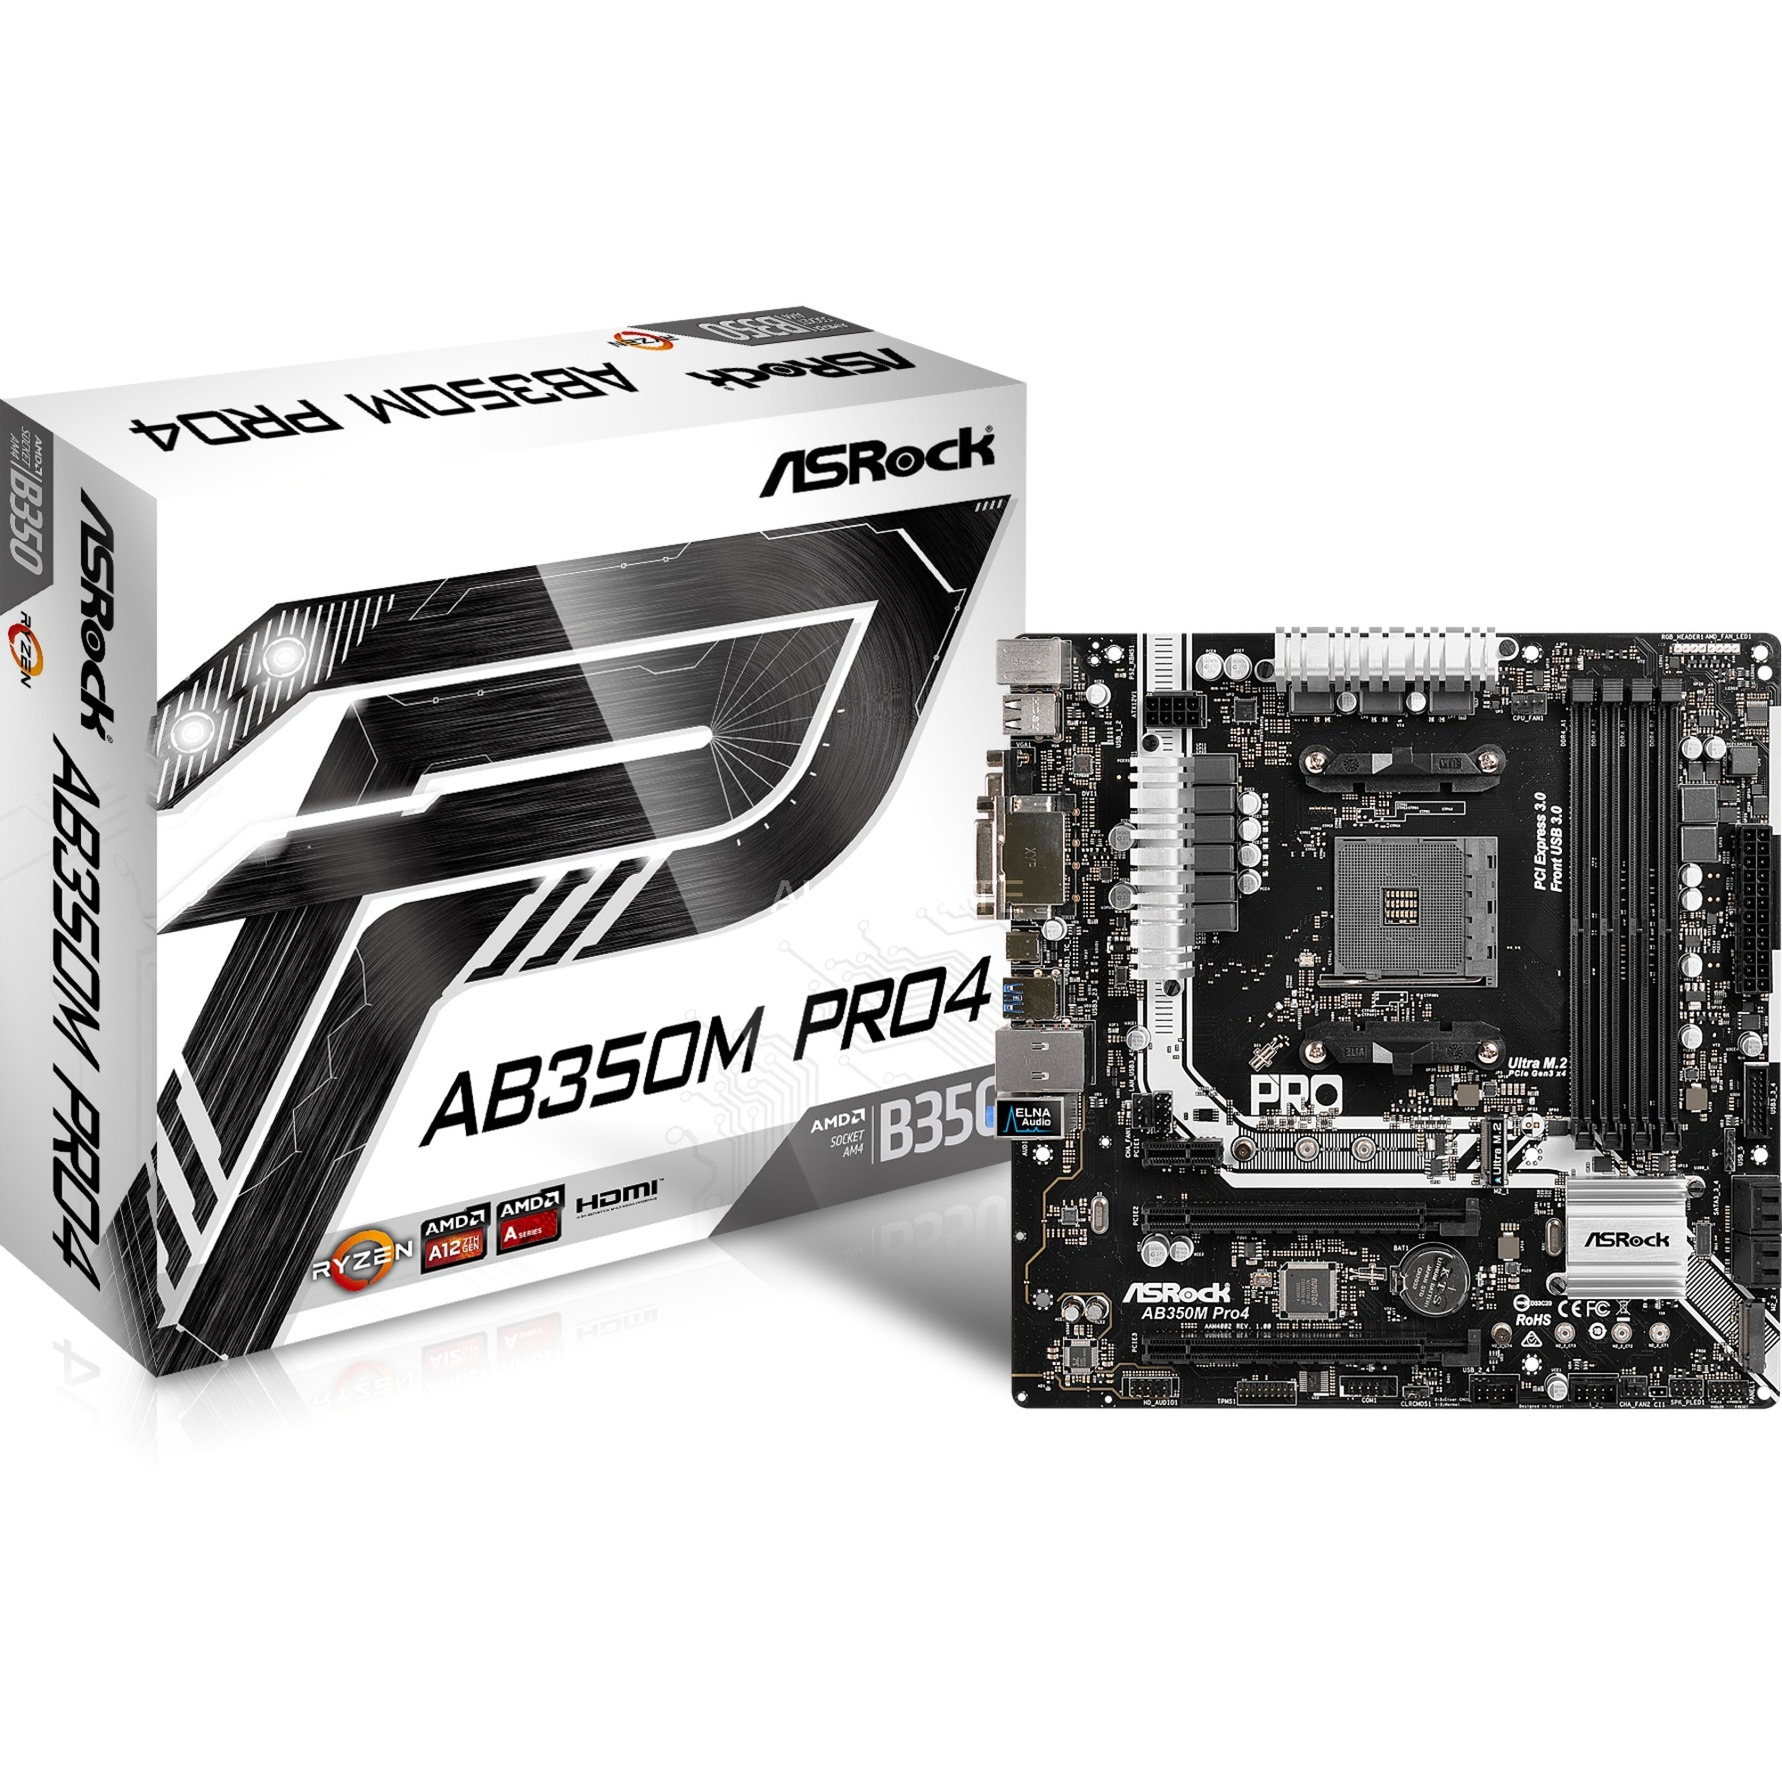 AB350M Pro4 Zócalo AM4 AMD B350 micro ATX, Placa base